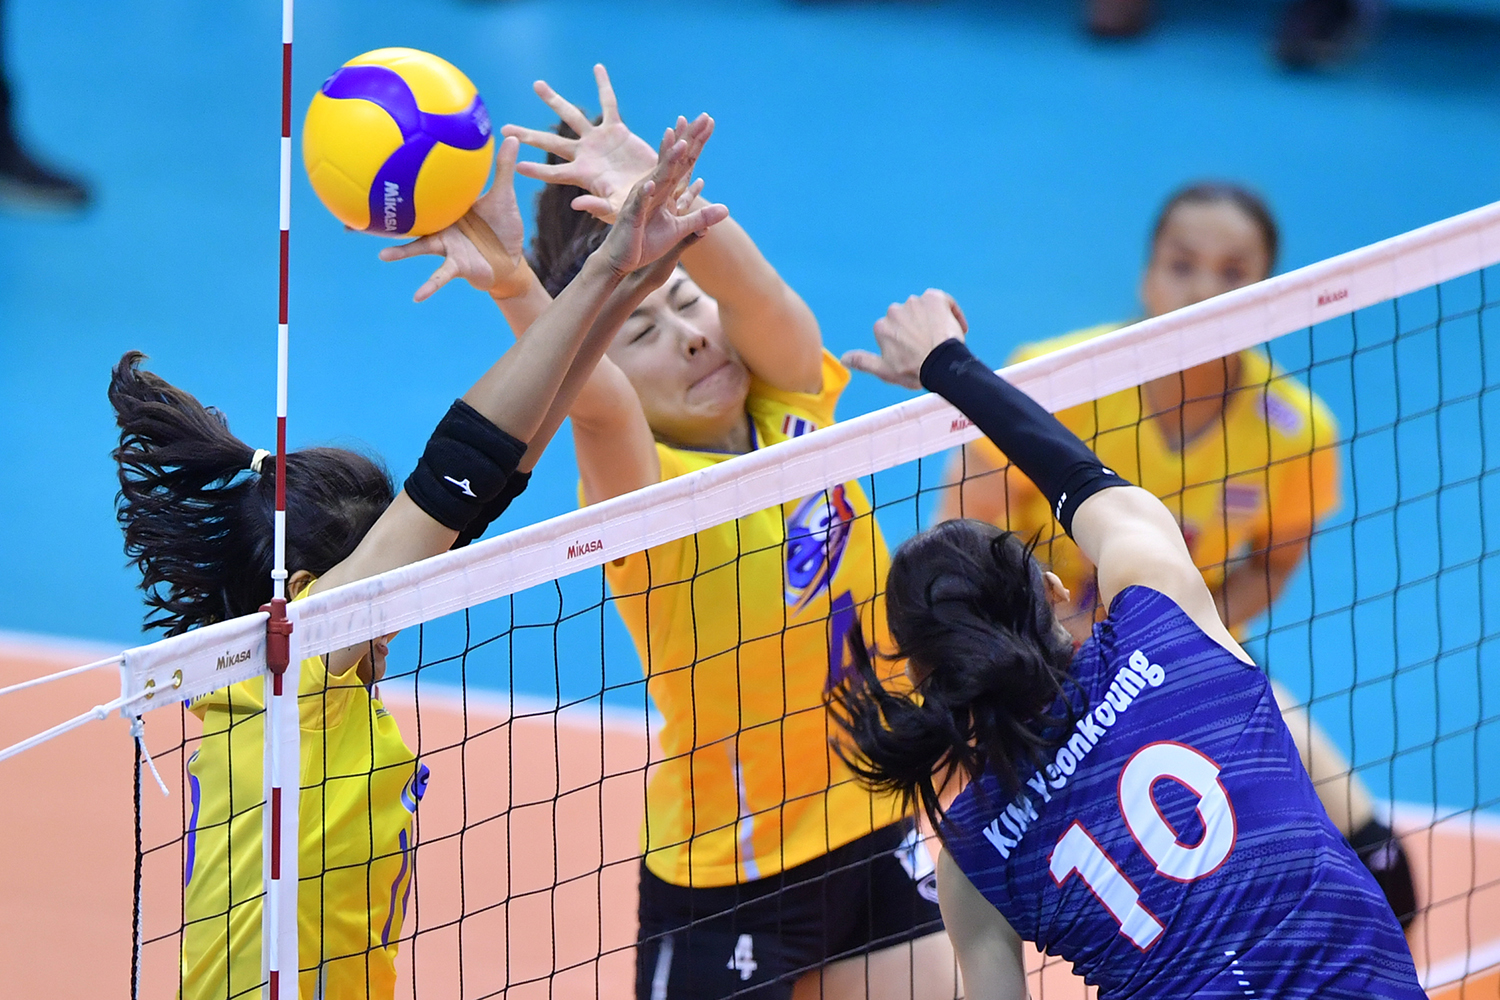 Kim Yeon Koung of South Korea overpowers Thai volleyball team members in the final of the Asian Olympic qualification tournament in Nakhon Ratchasima on Sunday. (FIVB photo)